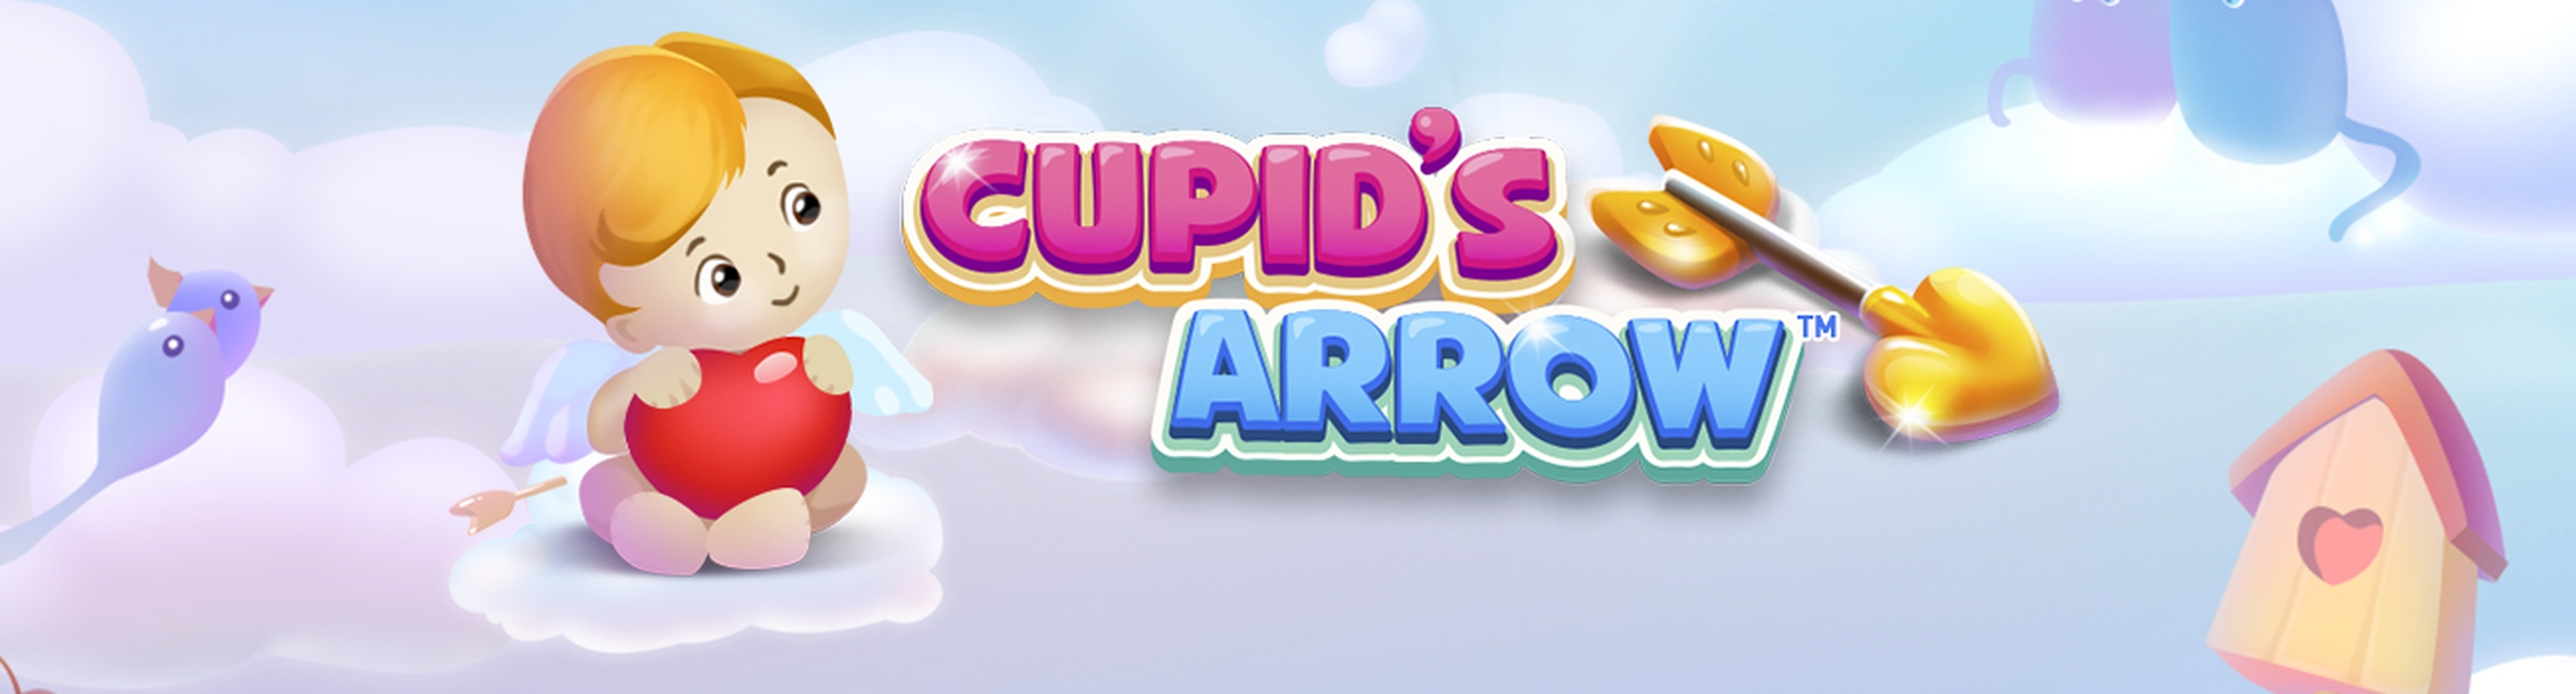 The Cupids Arrow (Mobilots) Online Slot Demo Game by Mobilots